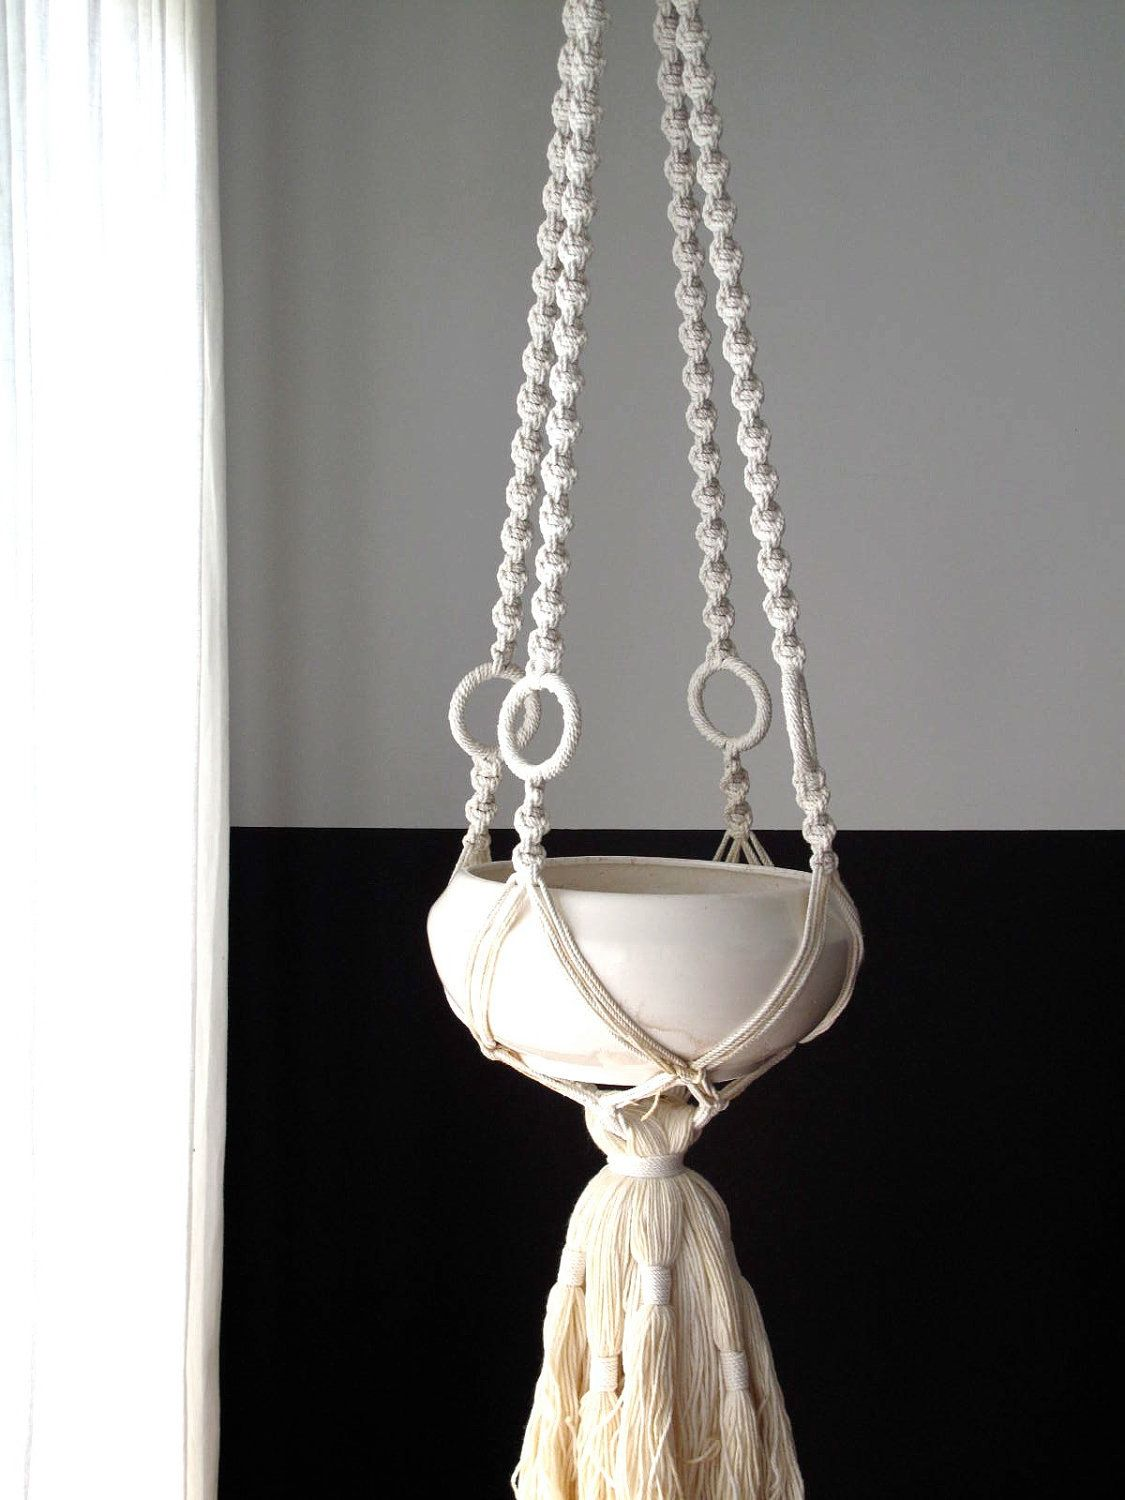 Vintage Hanging Planter - Vintage Macrame and Ceramic Planter, White, Pottery. $185.00, via Etsy.